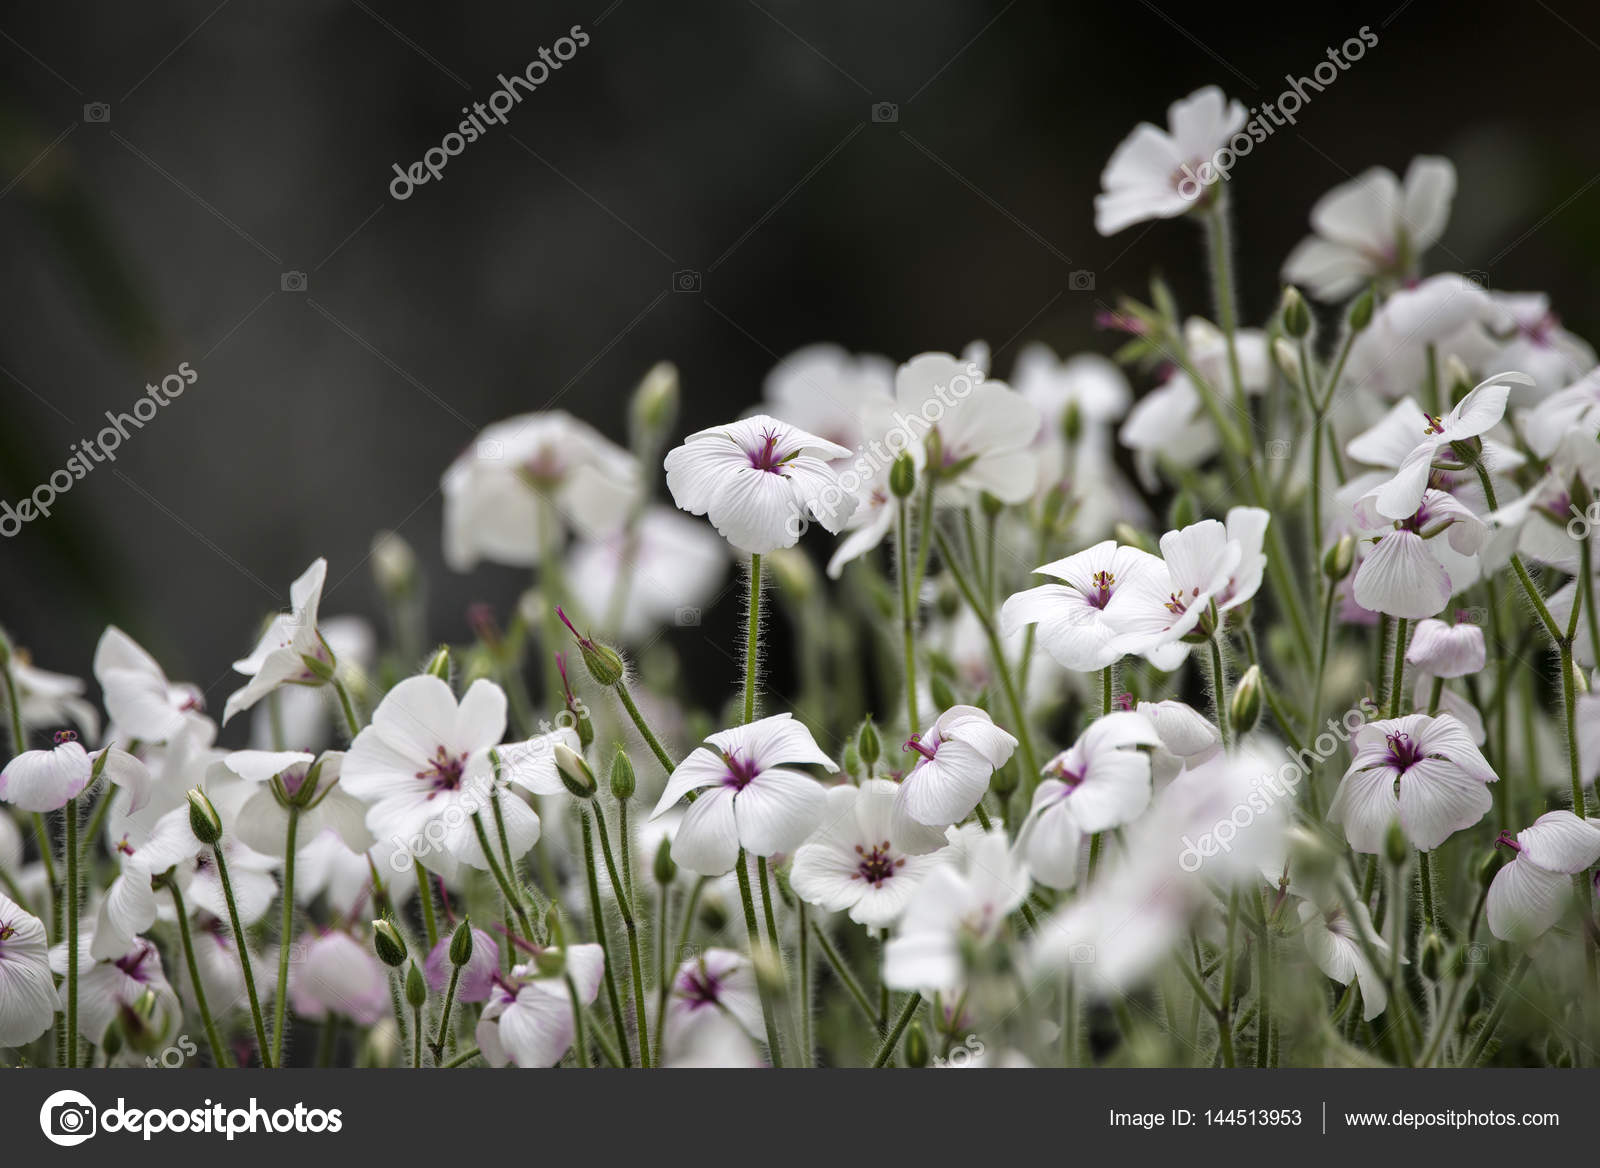 Beautiful Small White And Pink Flowers In Bloom In Spring Stock